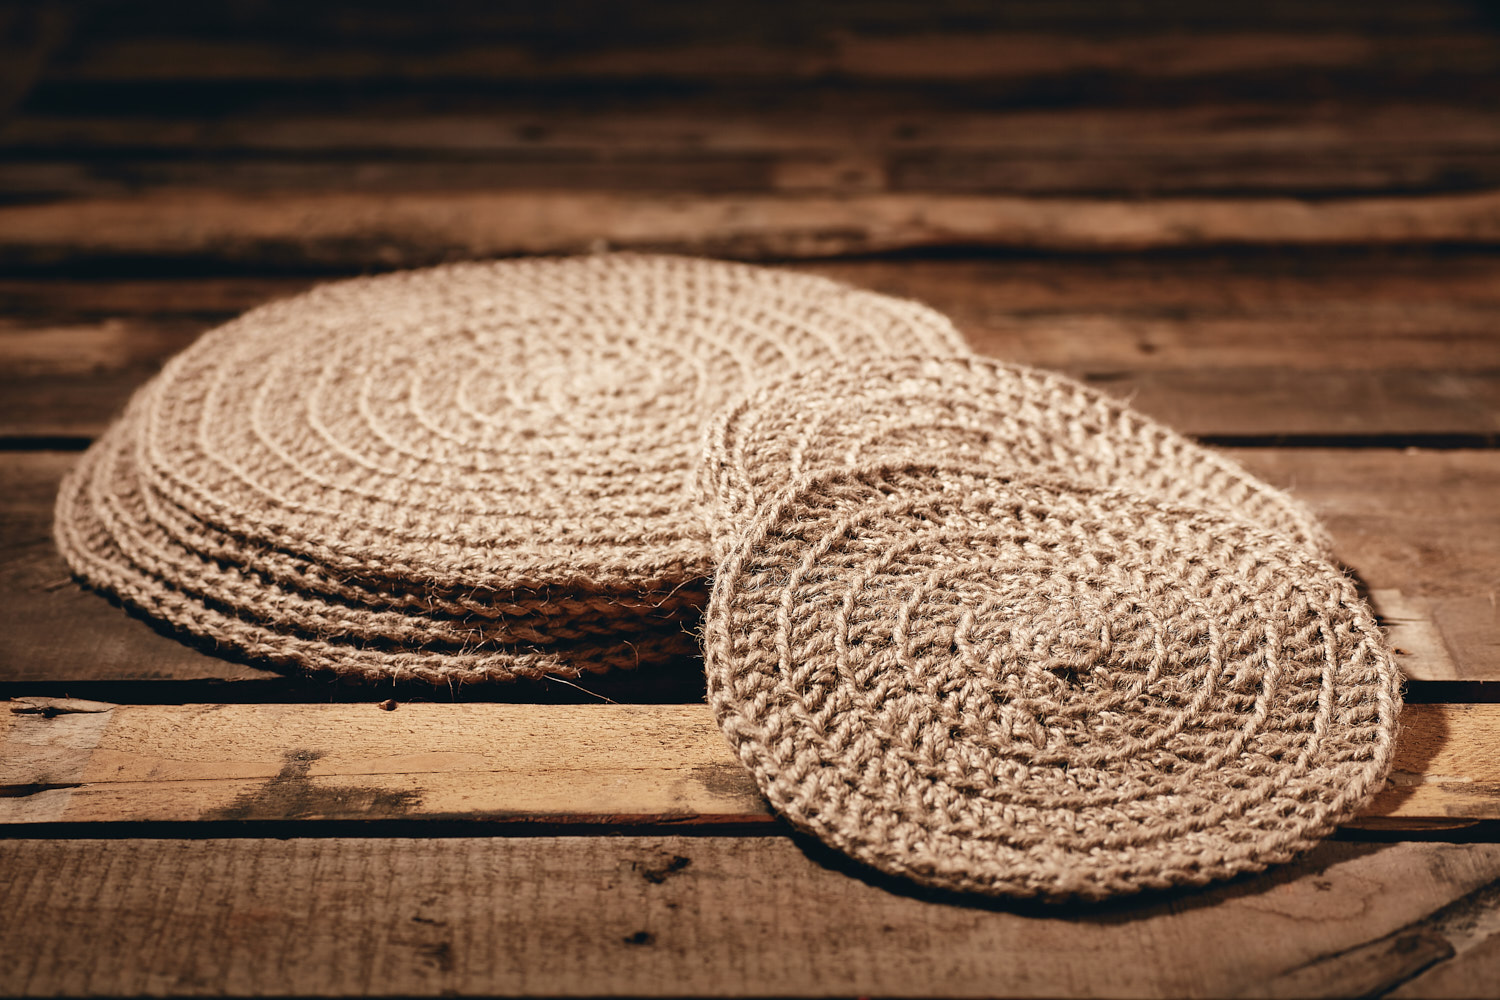 PLACEMATS - SMALL  Eco Twine Set of 4  Hand-crocheted placemats Approximately 23cm in diameter.